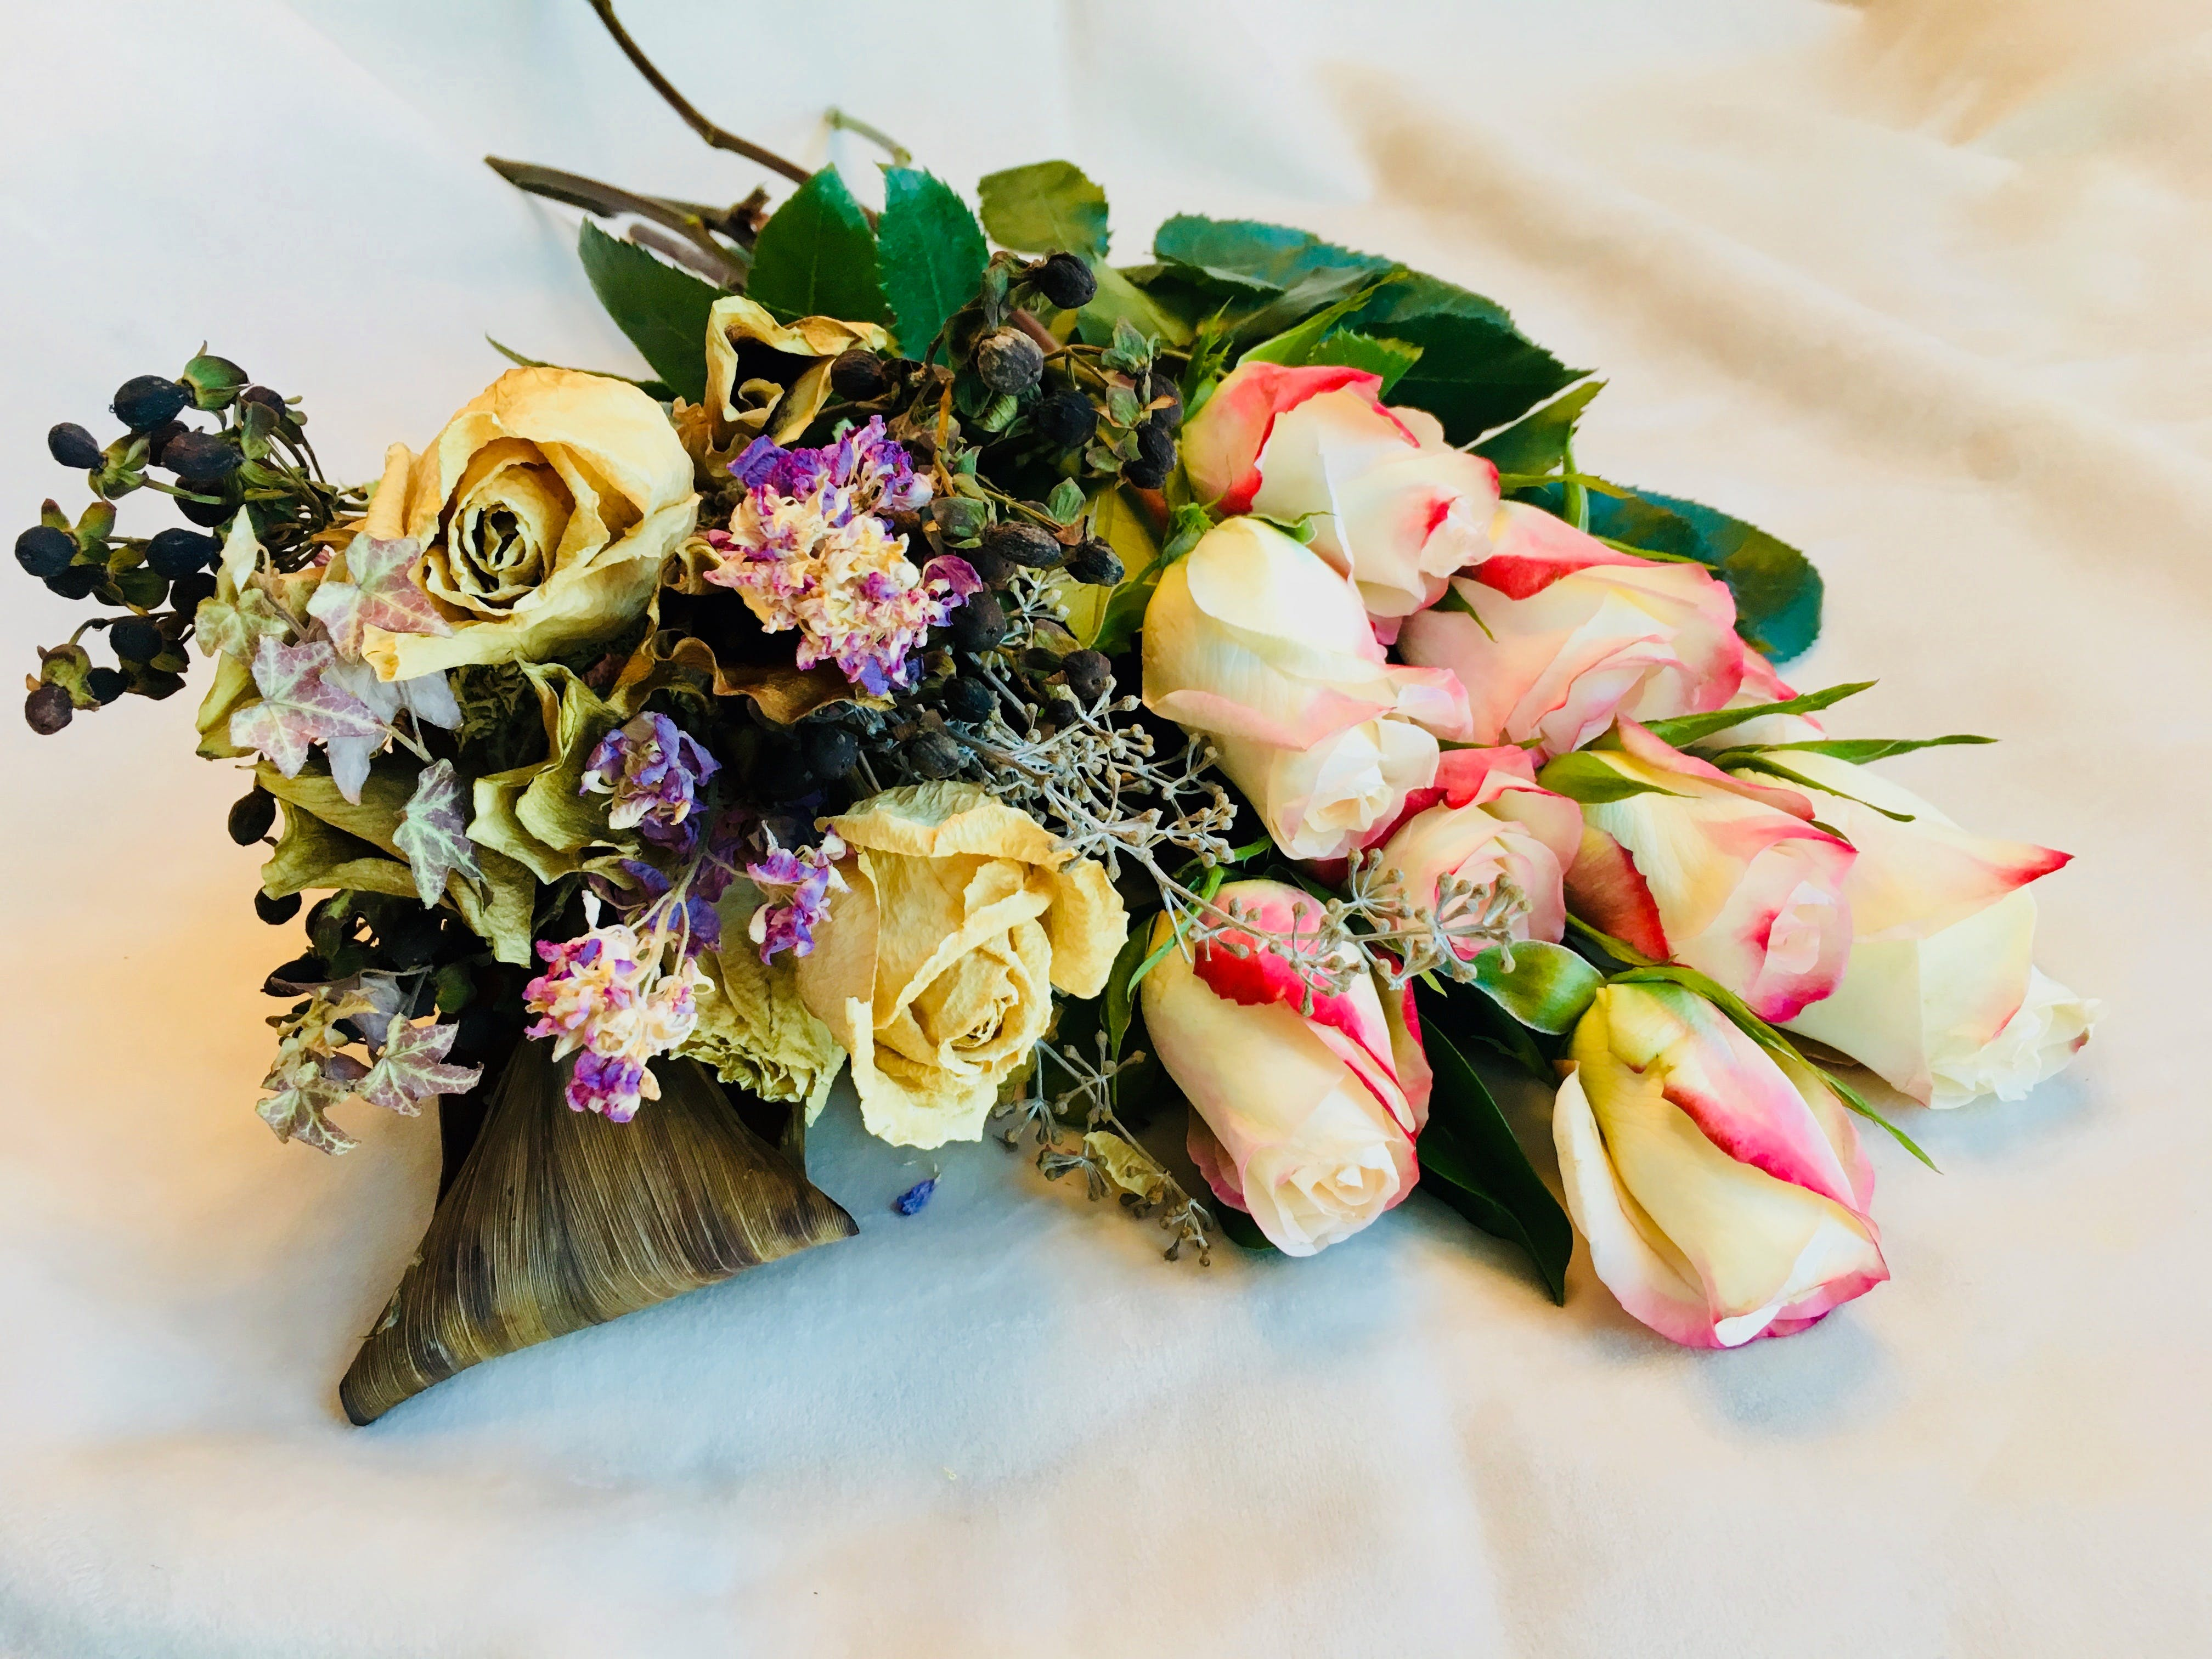 Free stock photo of flower bouquet, old and new, dried flowers with fresh roses